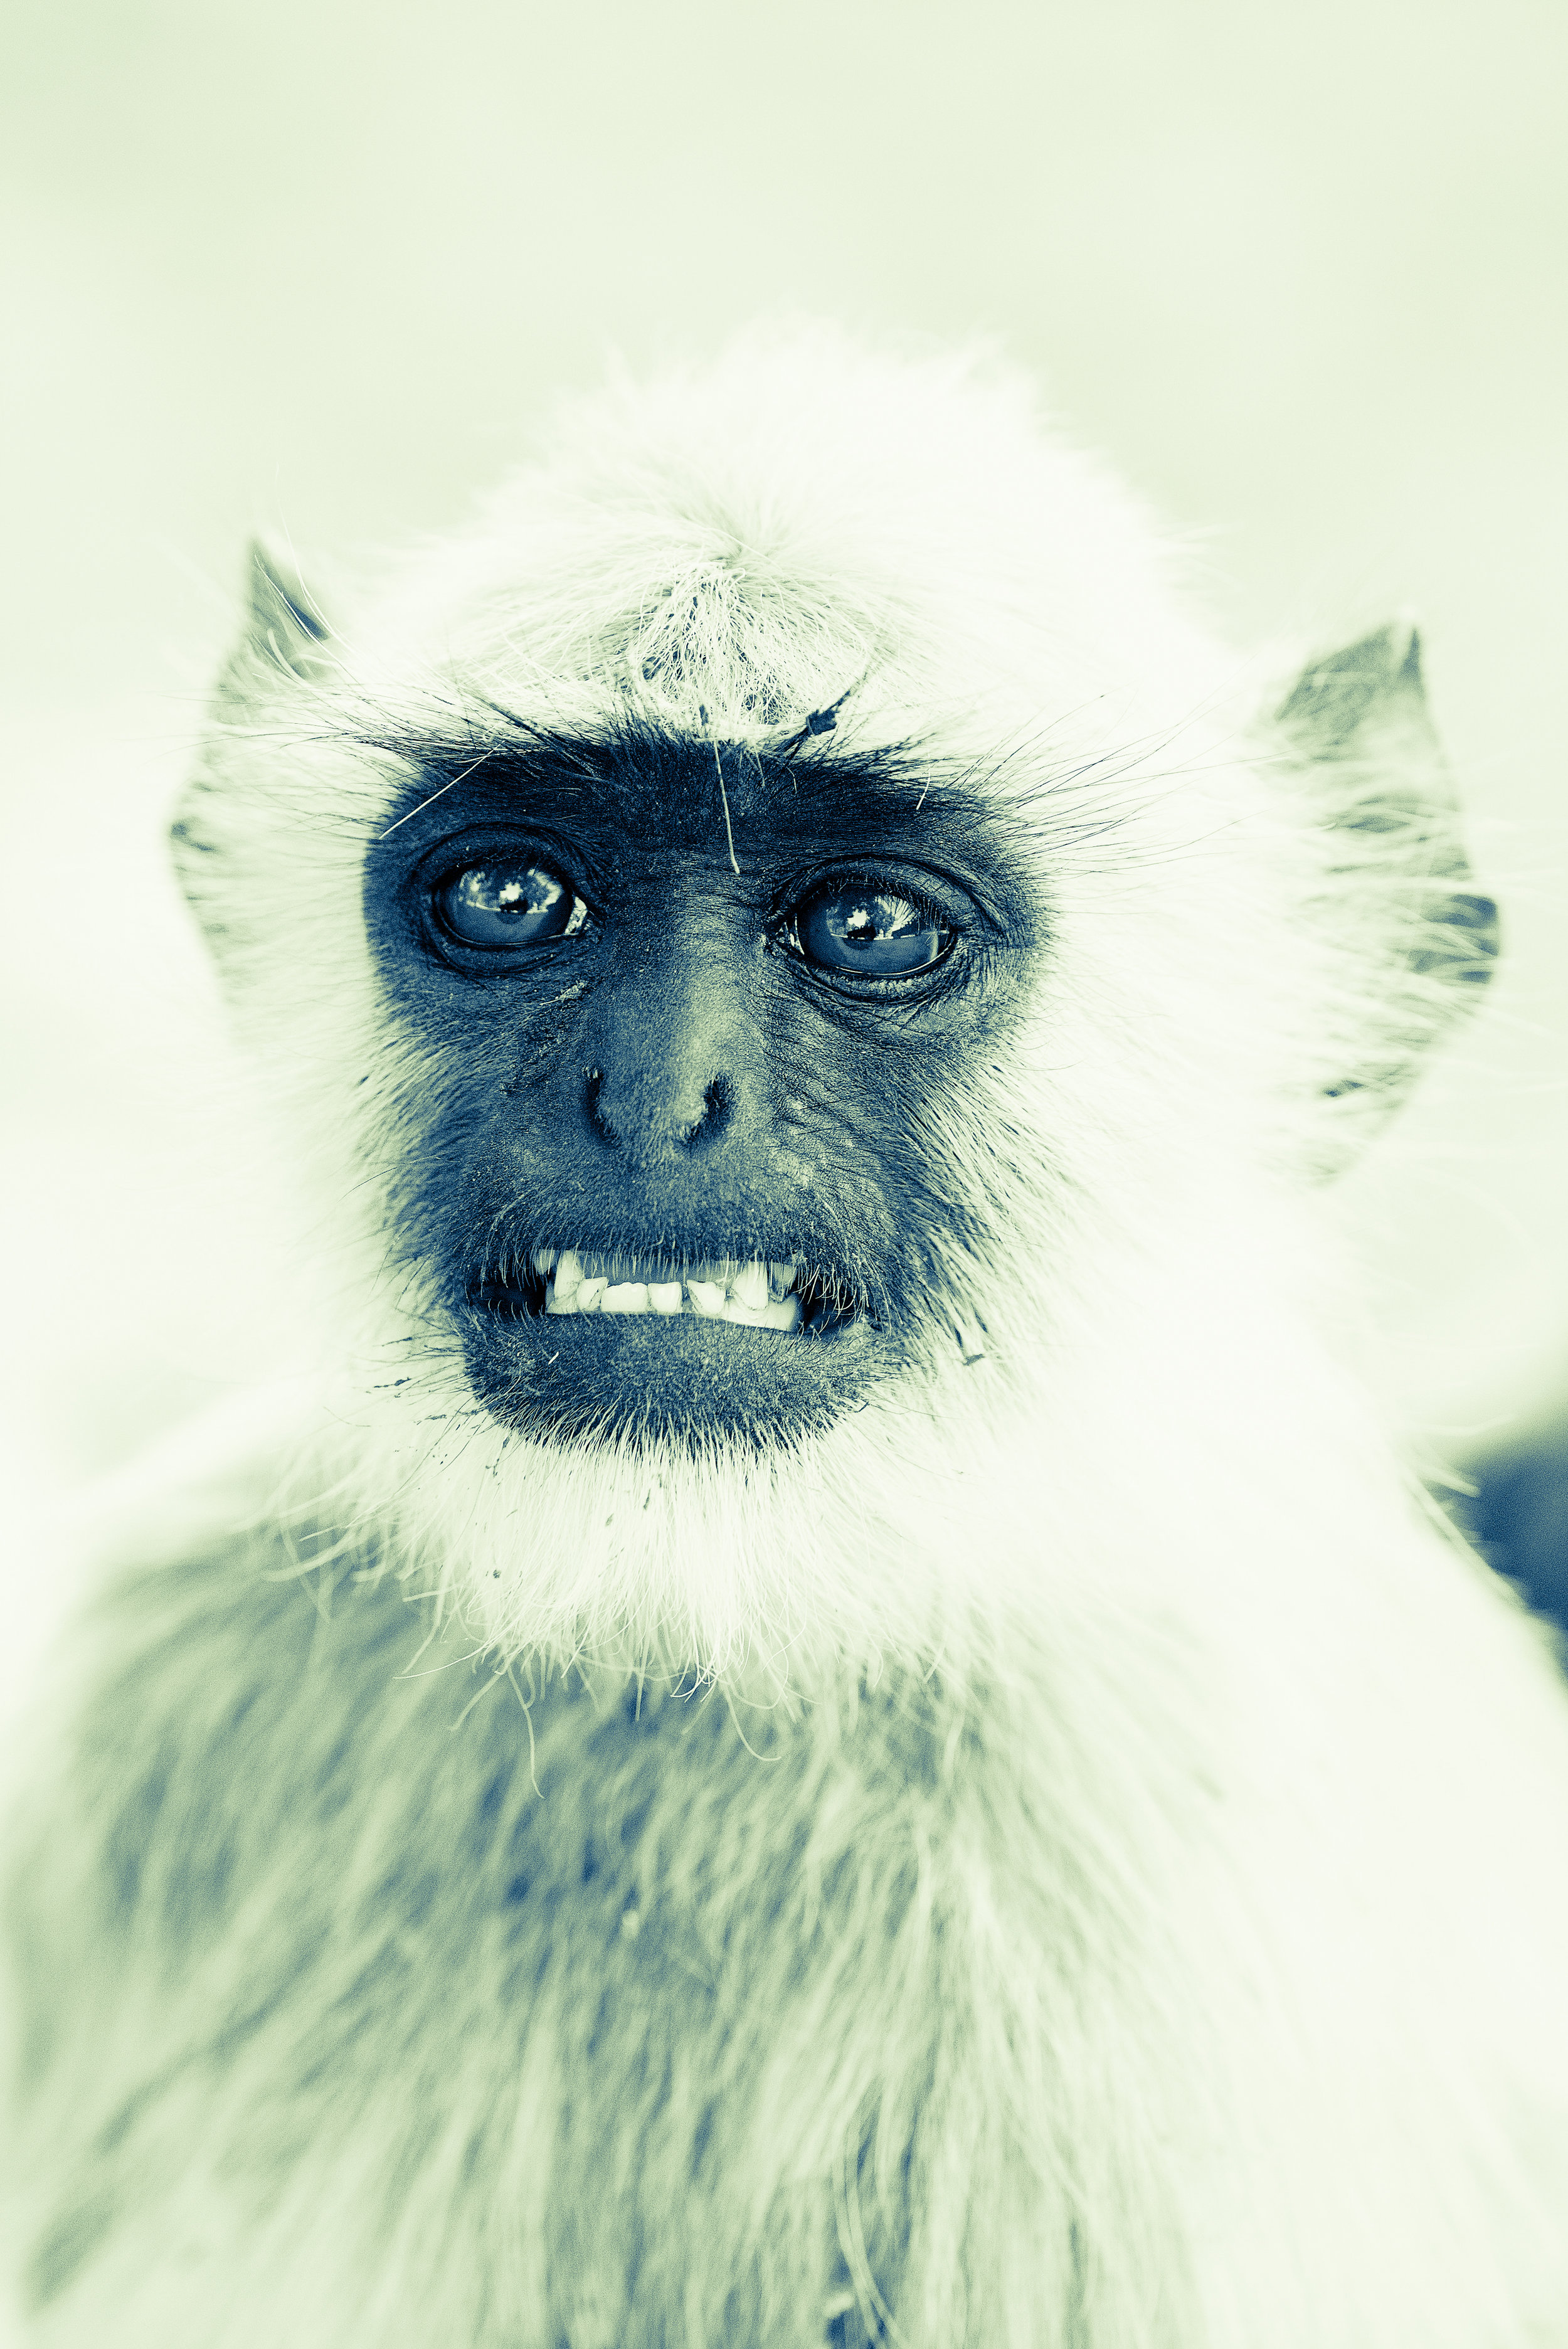 It's tough being a confused monkey.